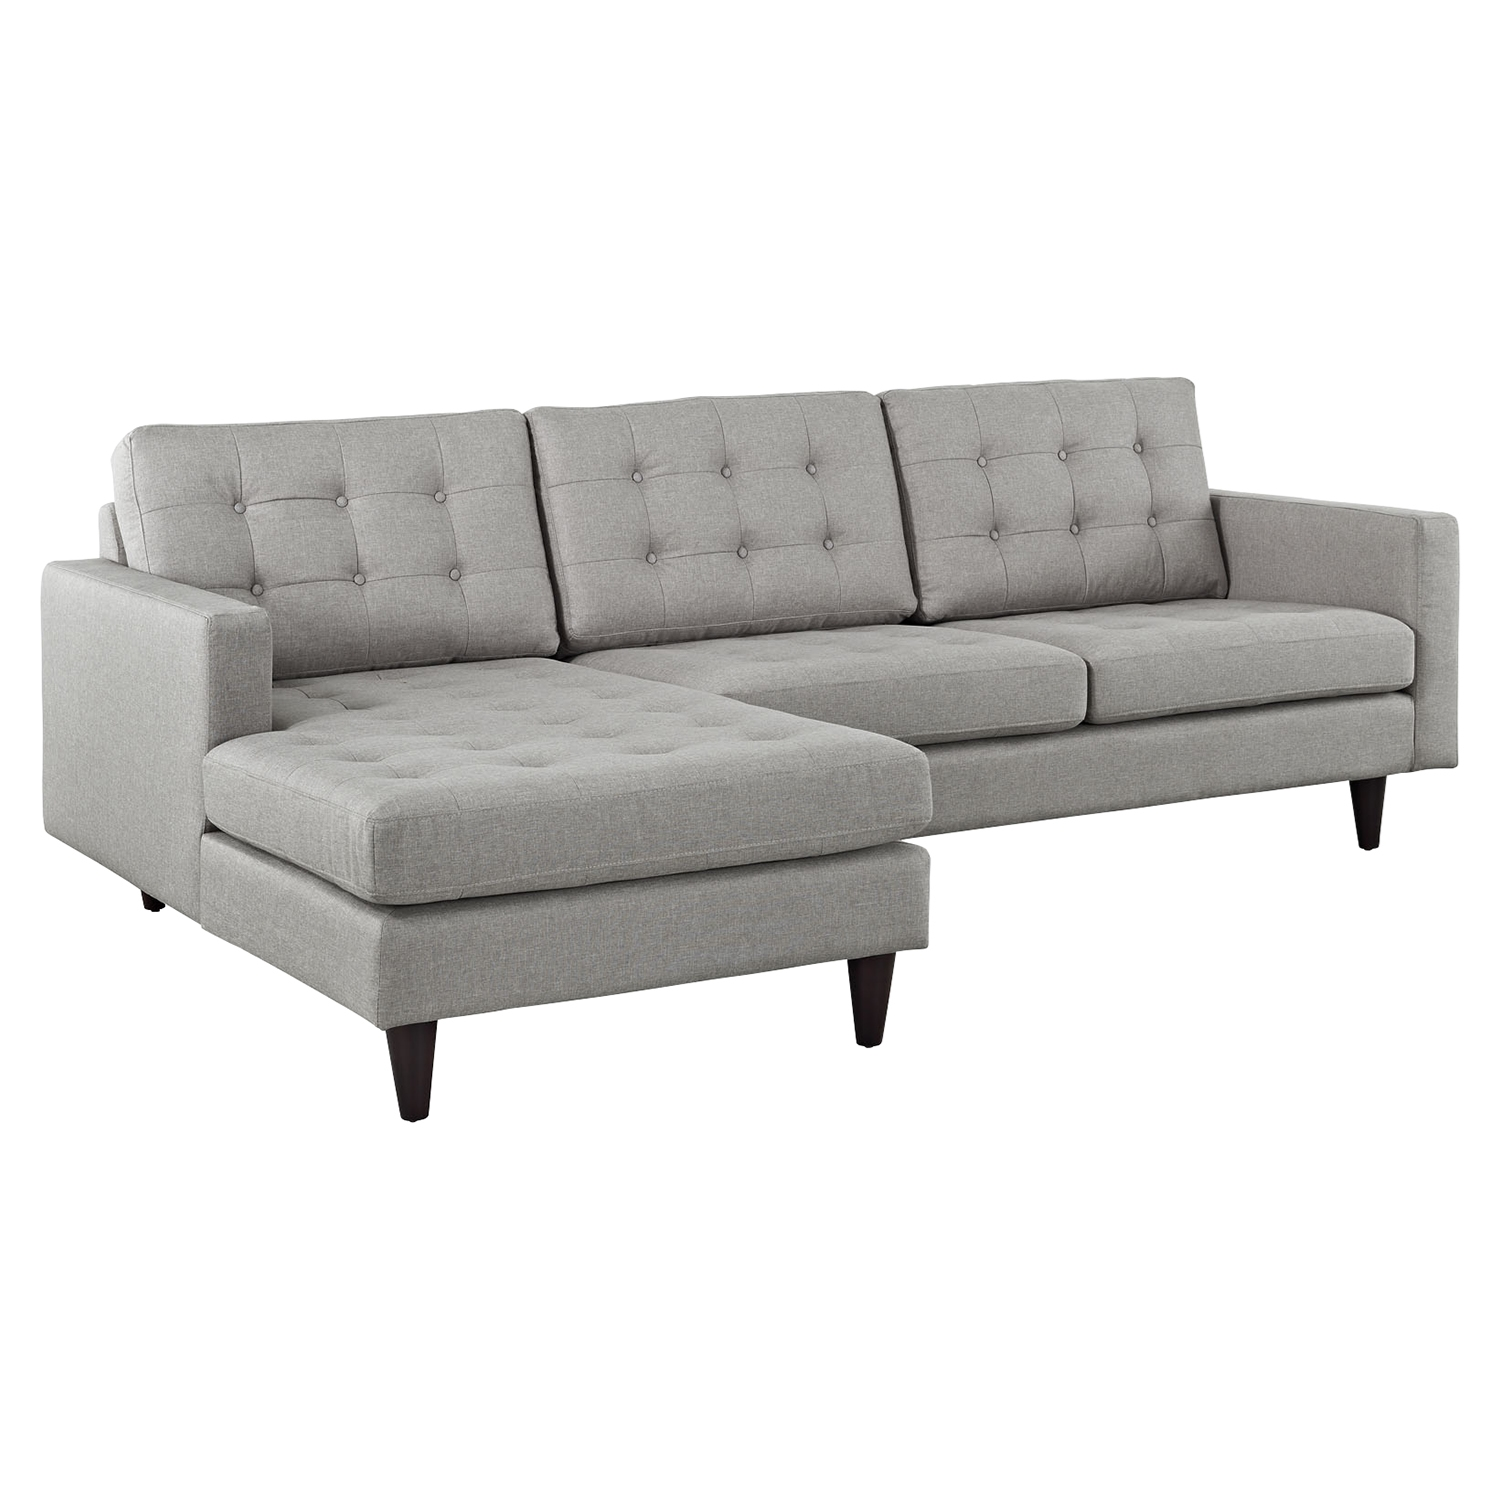 Empress Left-Facing Upholstered Sectional Sofa - EEI-1666